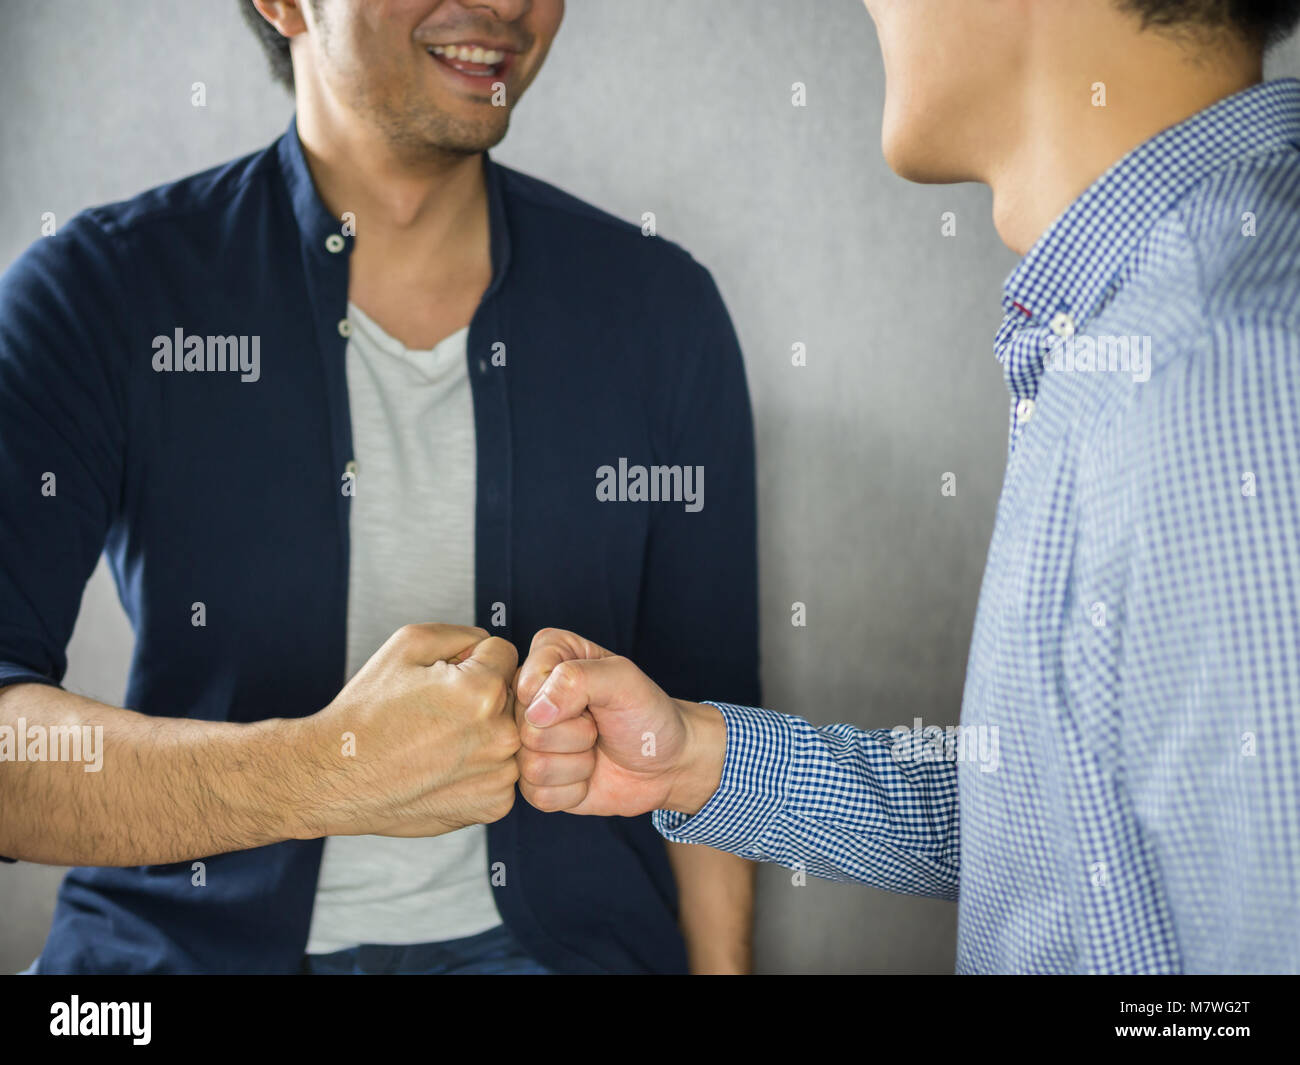 Friendship fist bump greeting togetherness stock photos friendship fist bump making by two men smiling stock image m4hsunfo